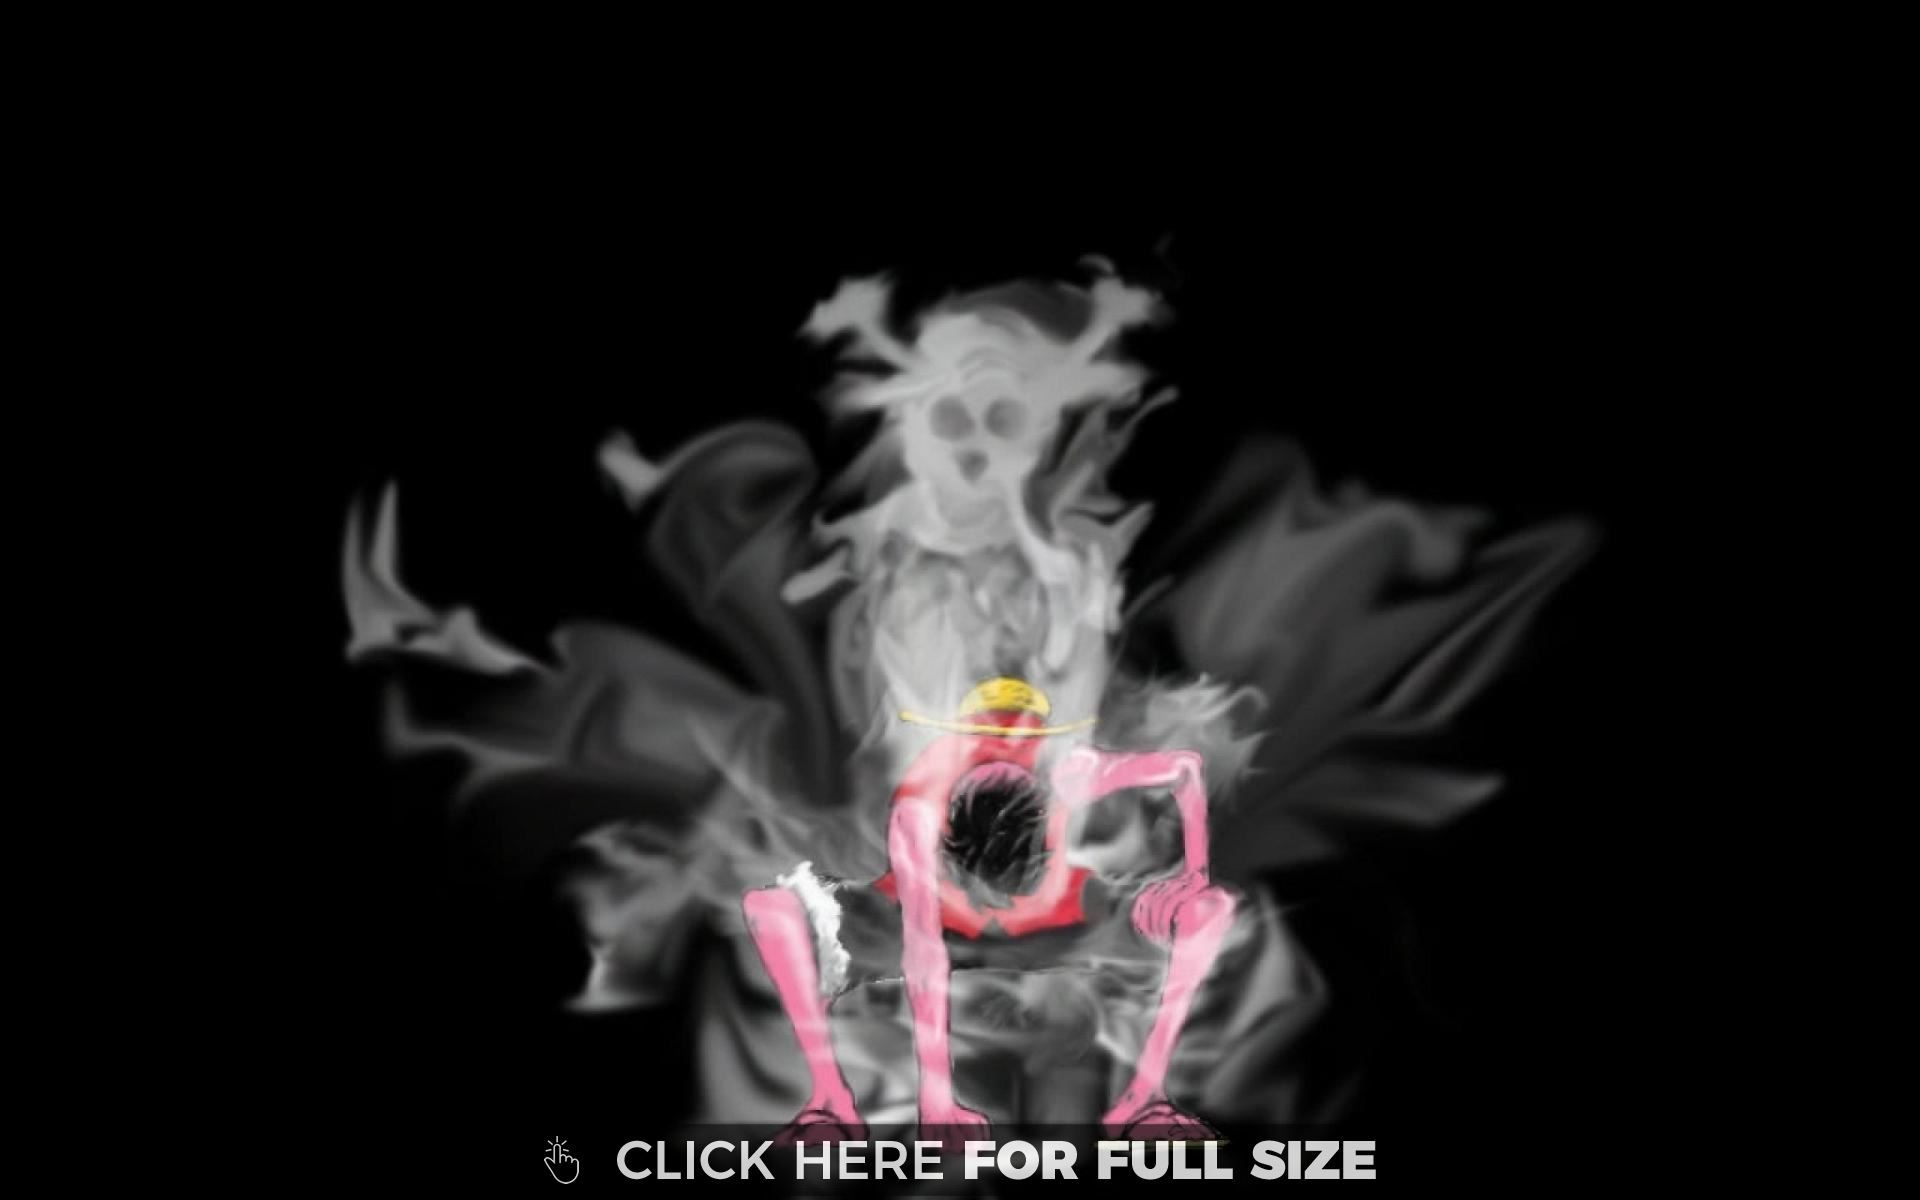 One Piece Luffy Gear Second One Piece Images One Piece Luffy Anime Wallpaper